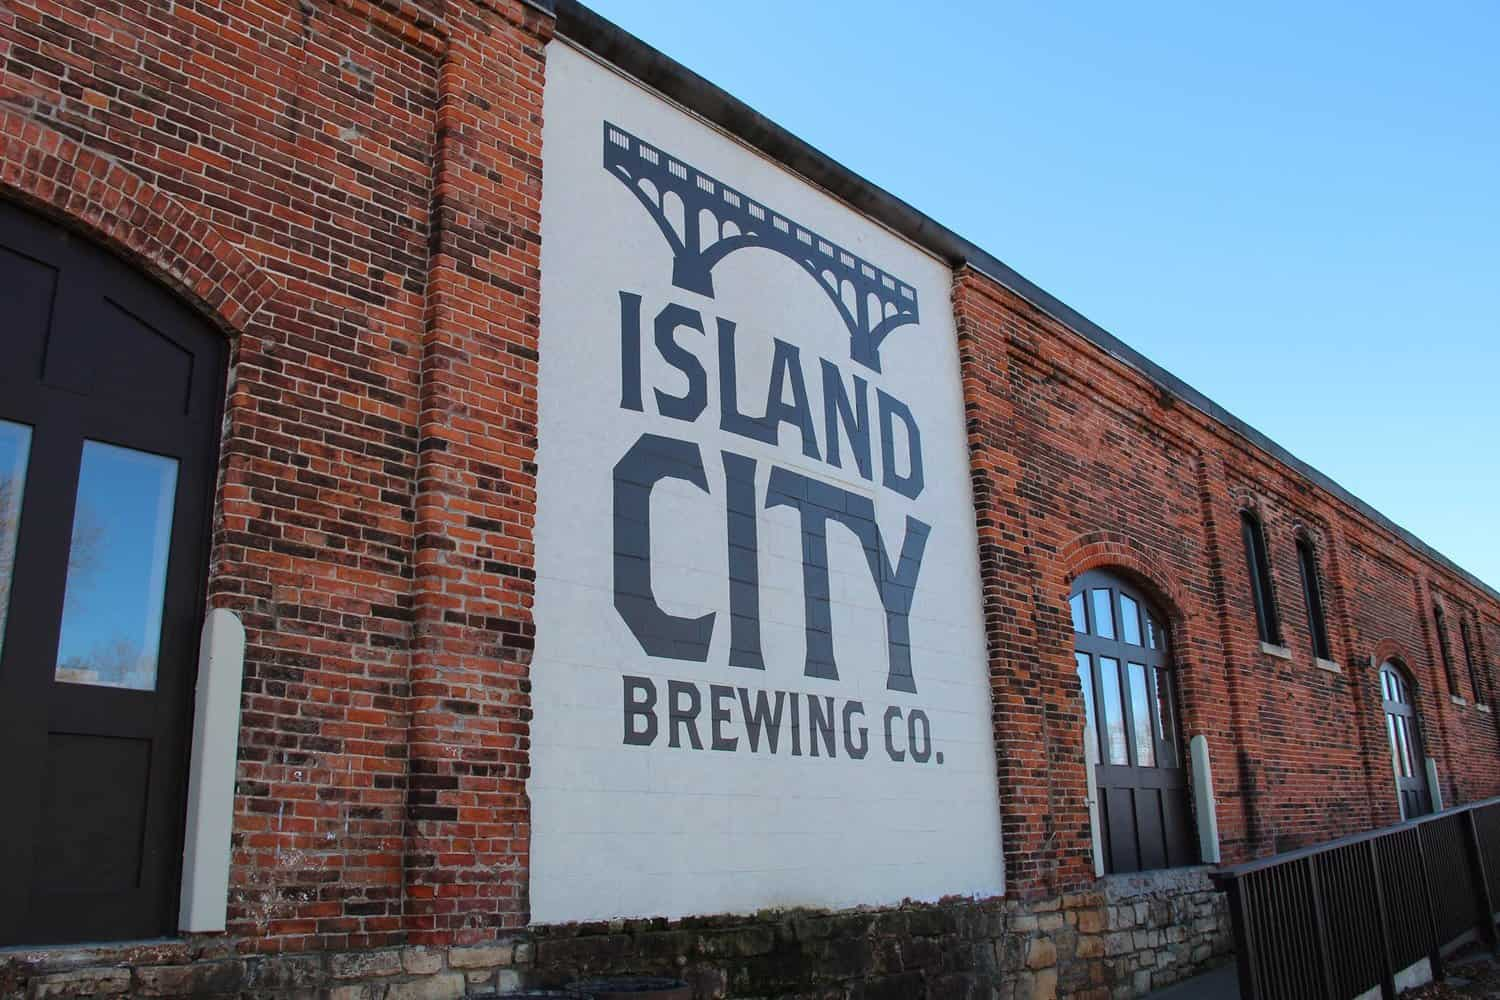 Island City Brewing Company (coming soon)